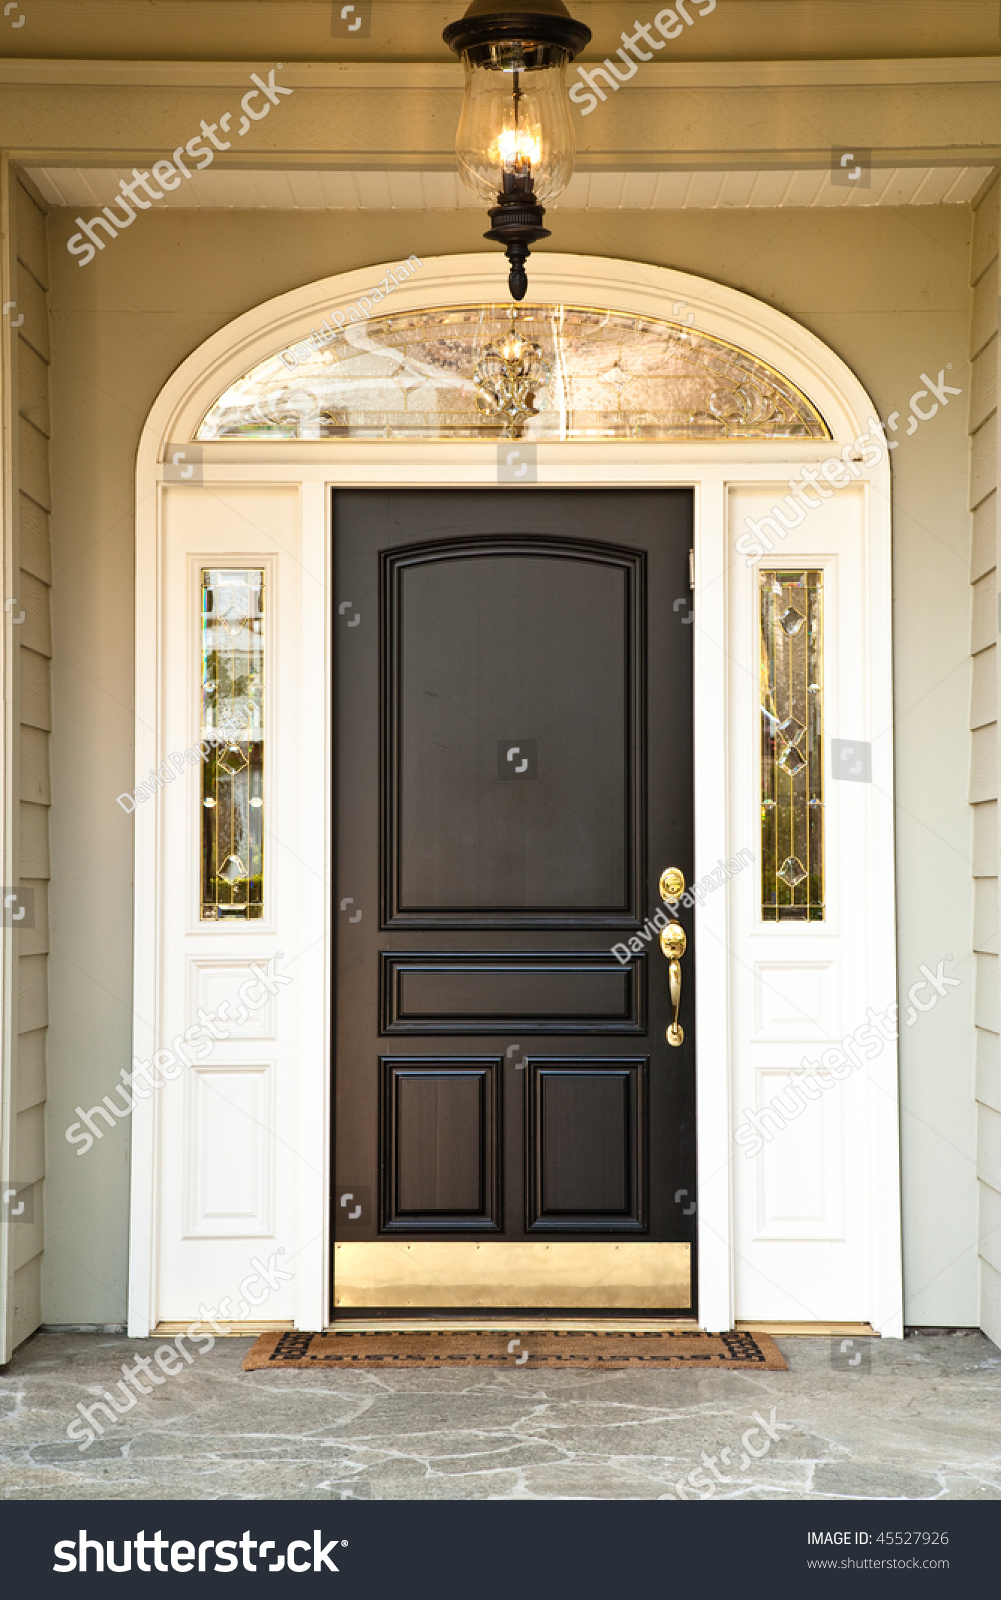 Front Door Upscale Home Illuminated Porch Stock Photo 45527926 Shutterstock